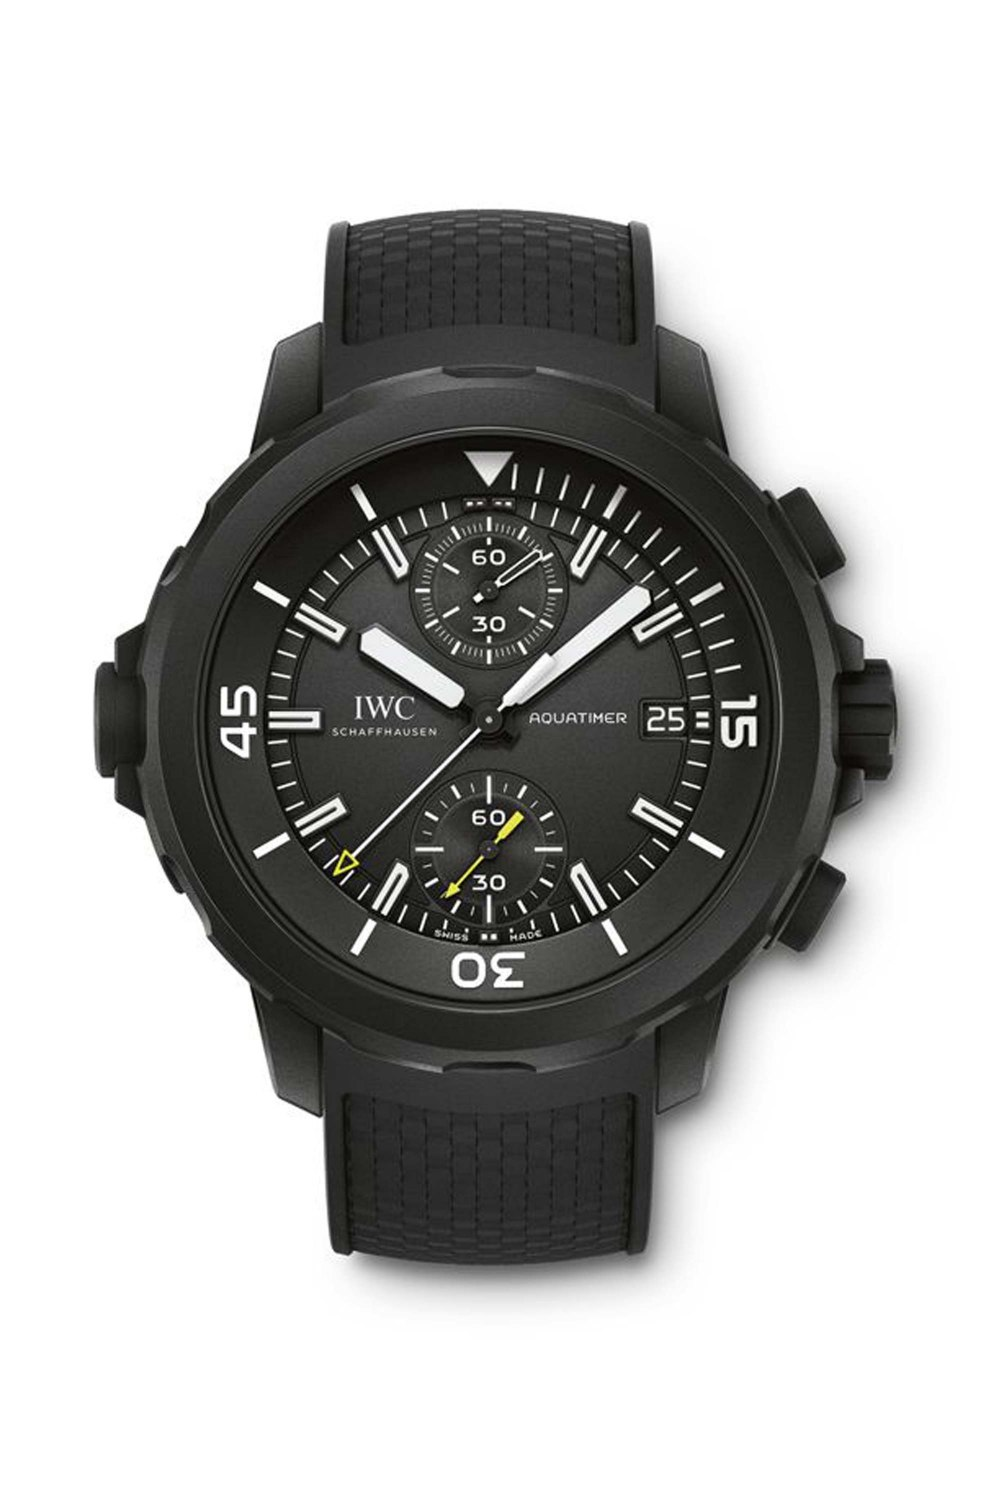 "IWC SCHAFFHAUSEN Aquatimer Chronograph Edition ""Galapagos Islands"" IW379502"